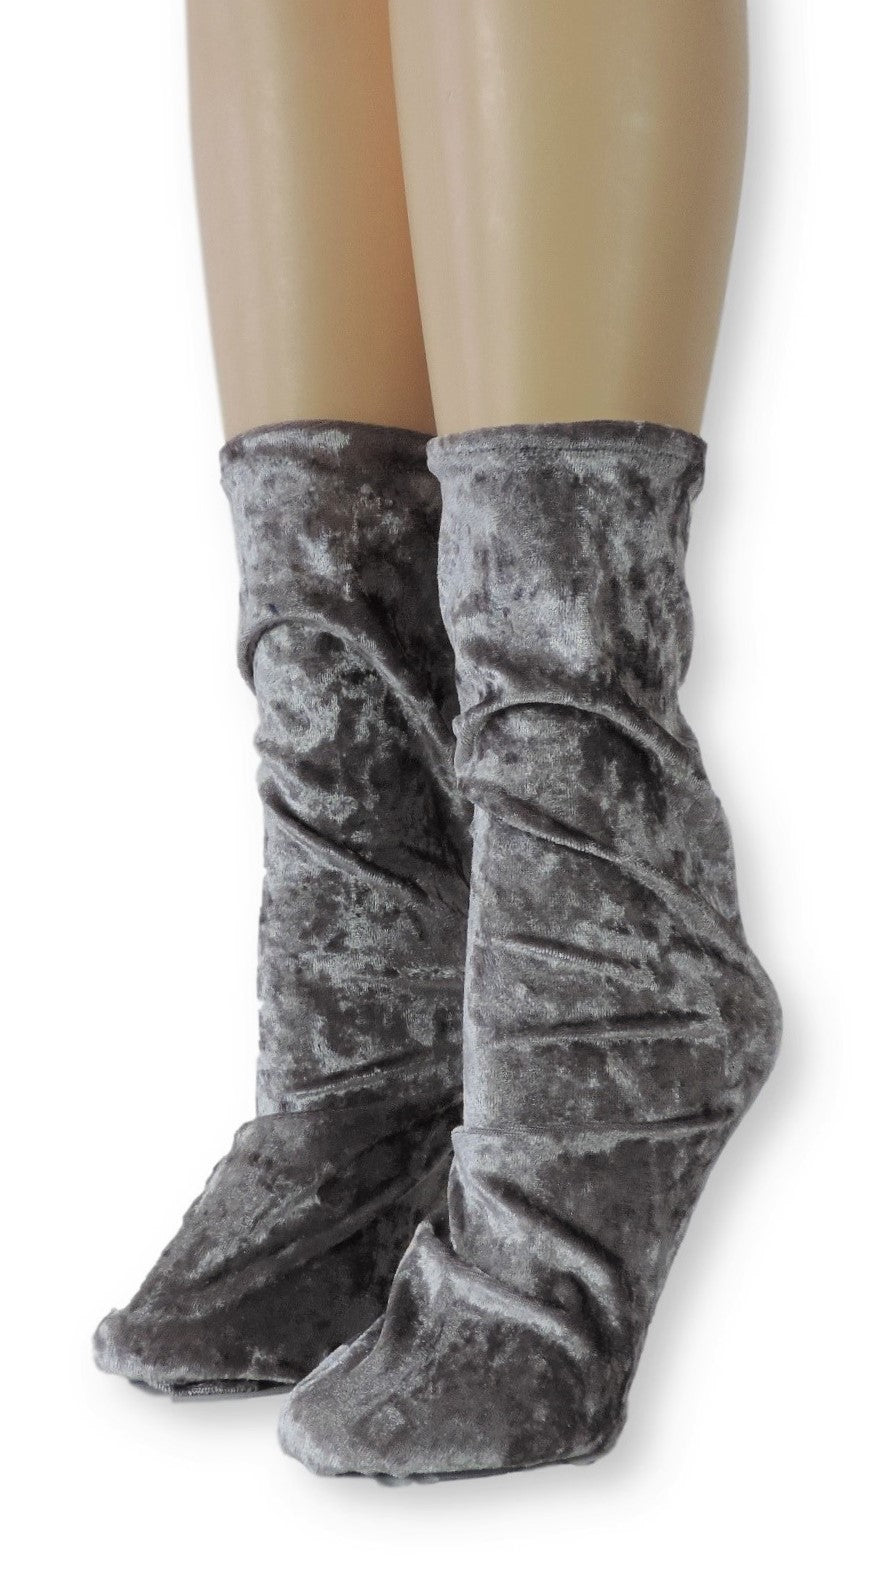 Silver Crushed Velvet Socks